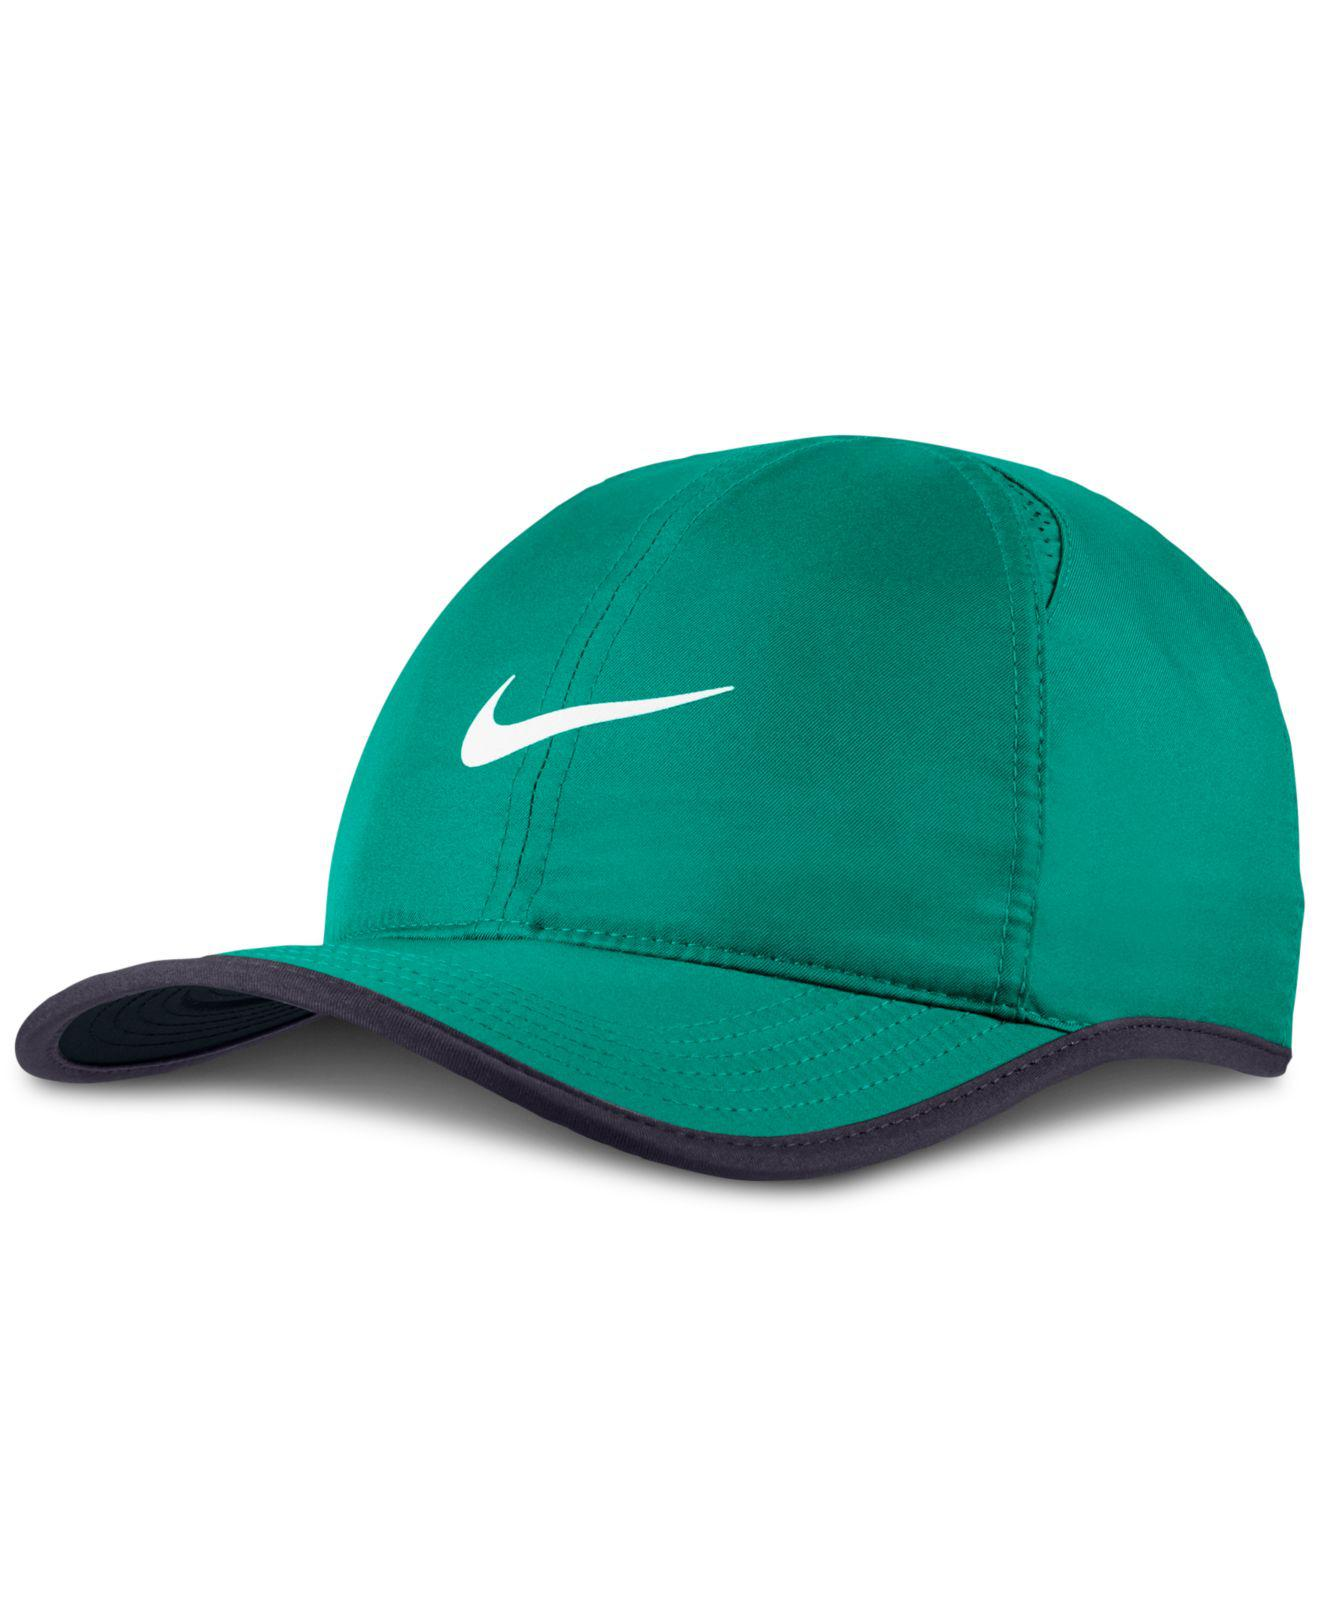 3ac2b2f3d94 Lyst - Nike Featherlight Cap in Green for Men